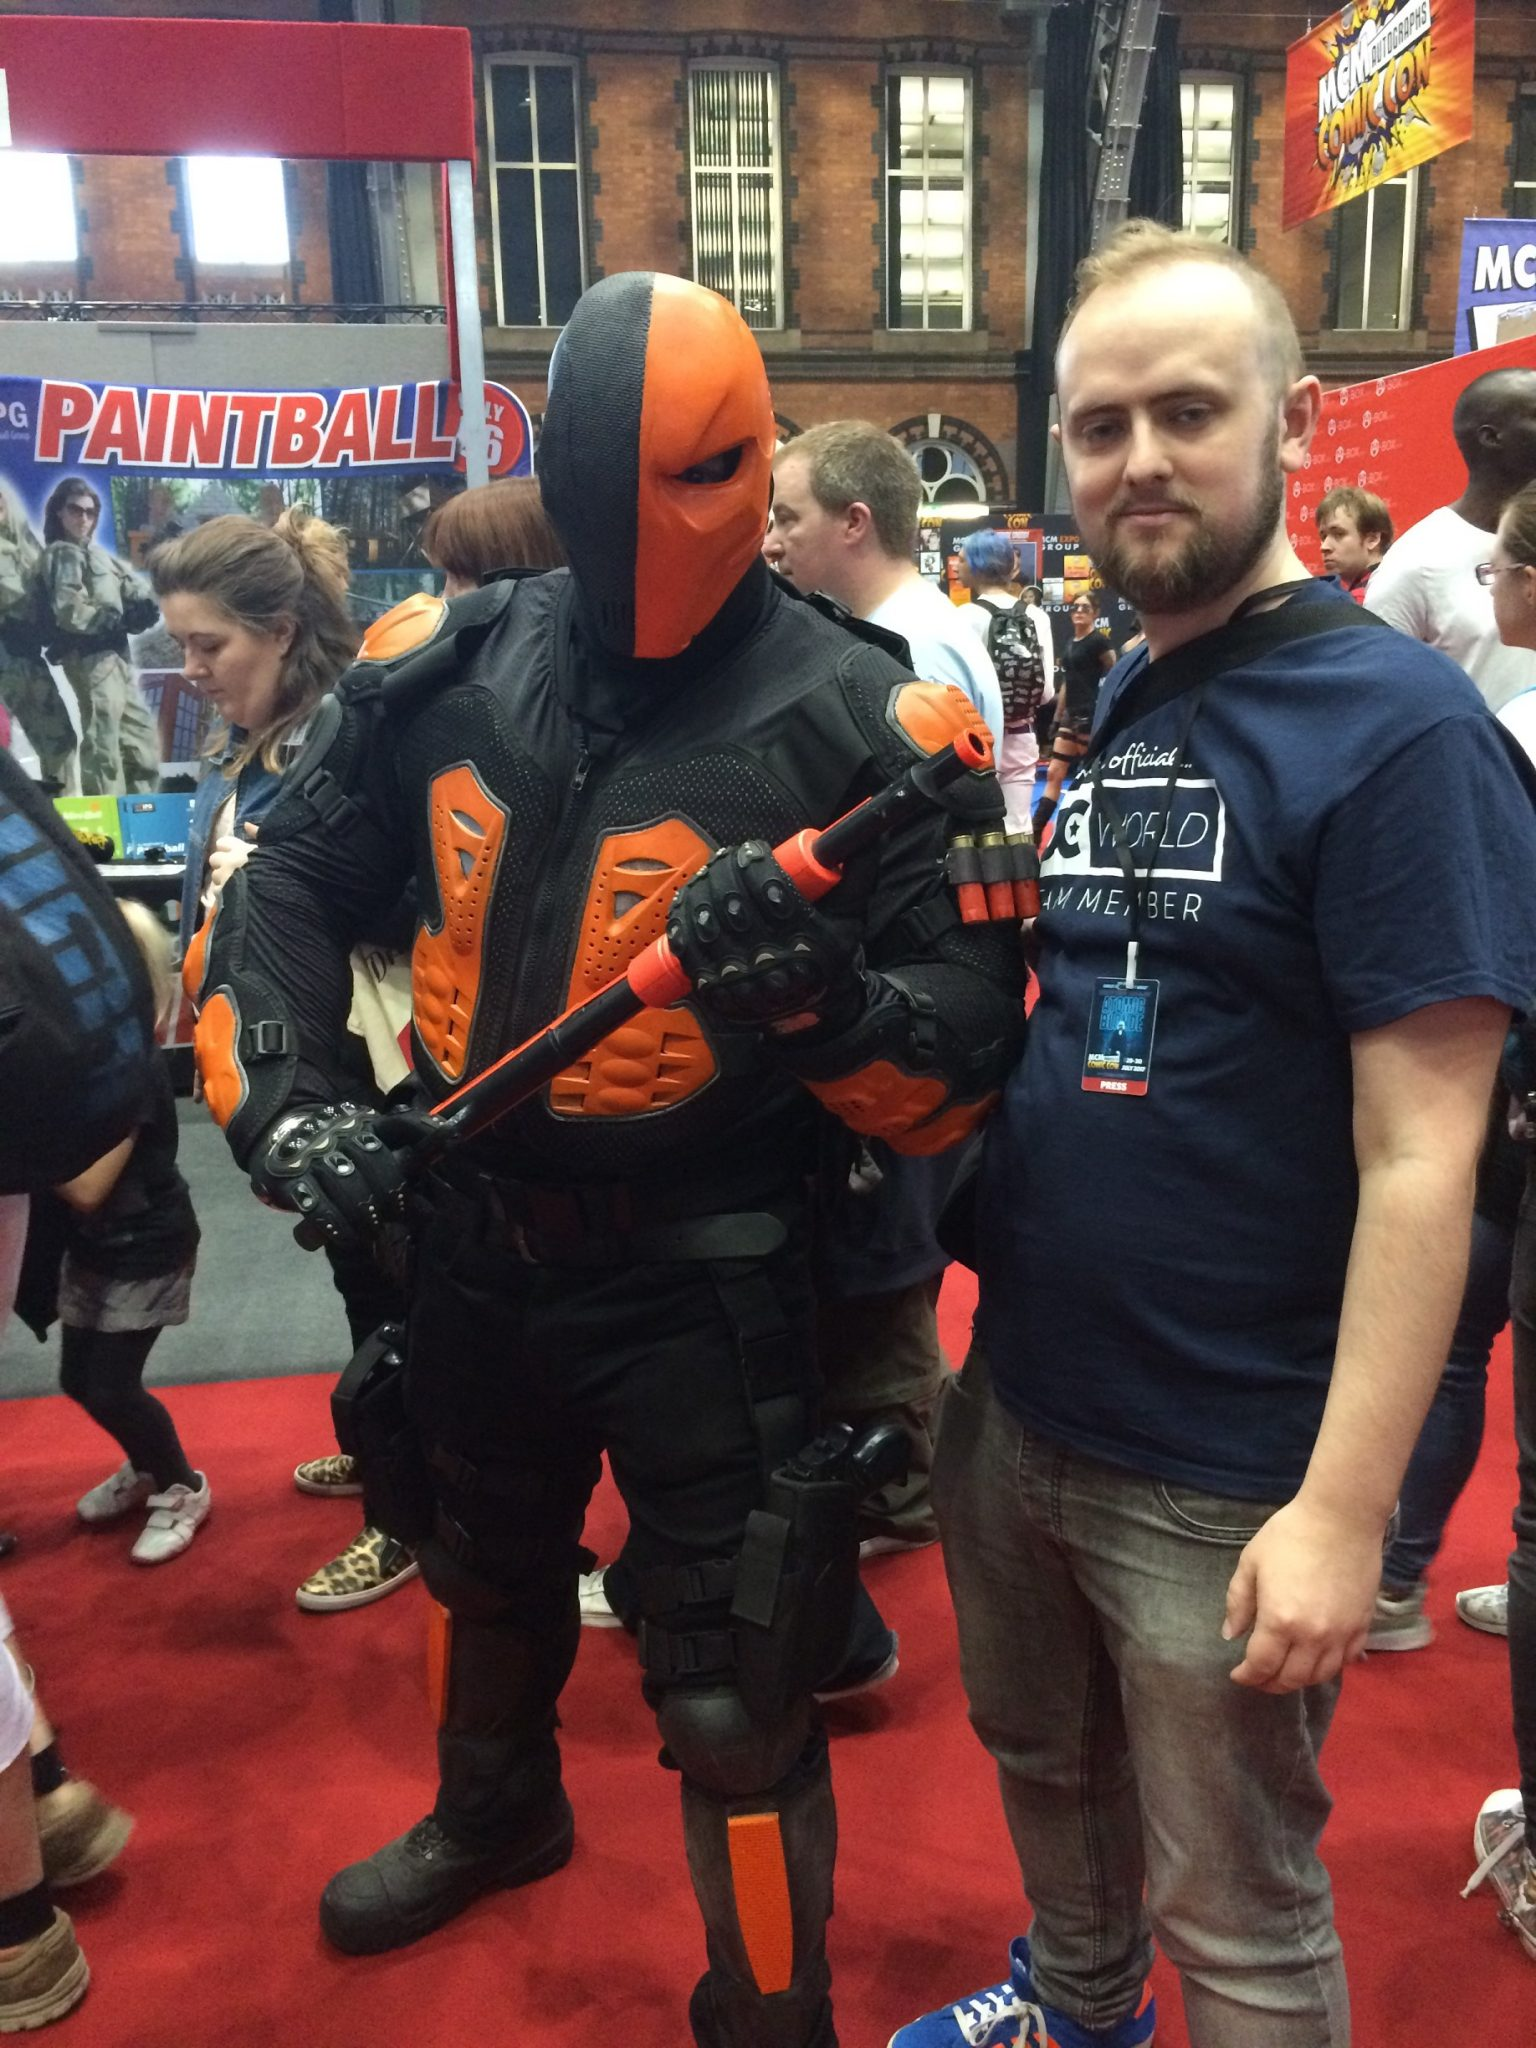 Deathstroke cosplayer - MCM Manchester